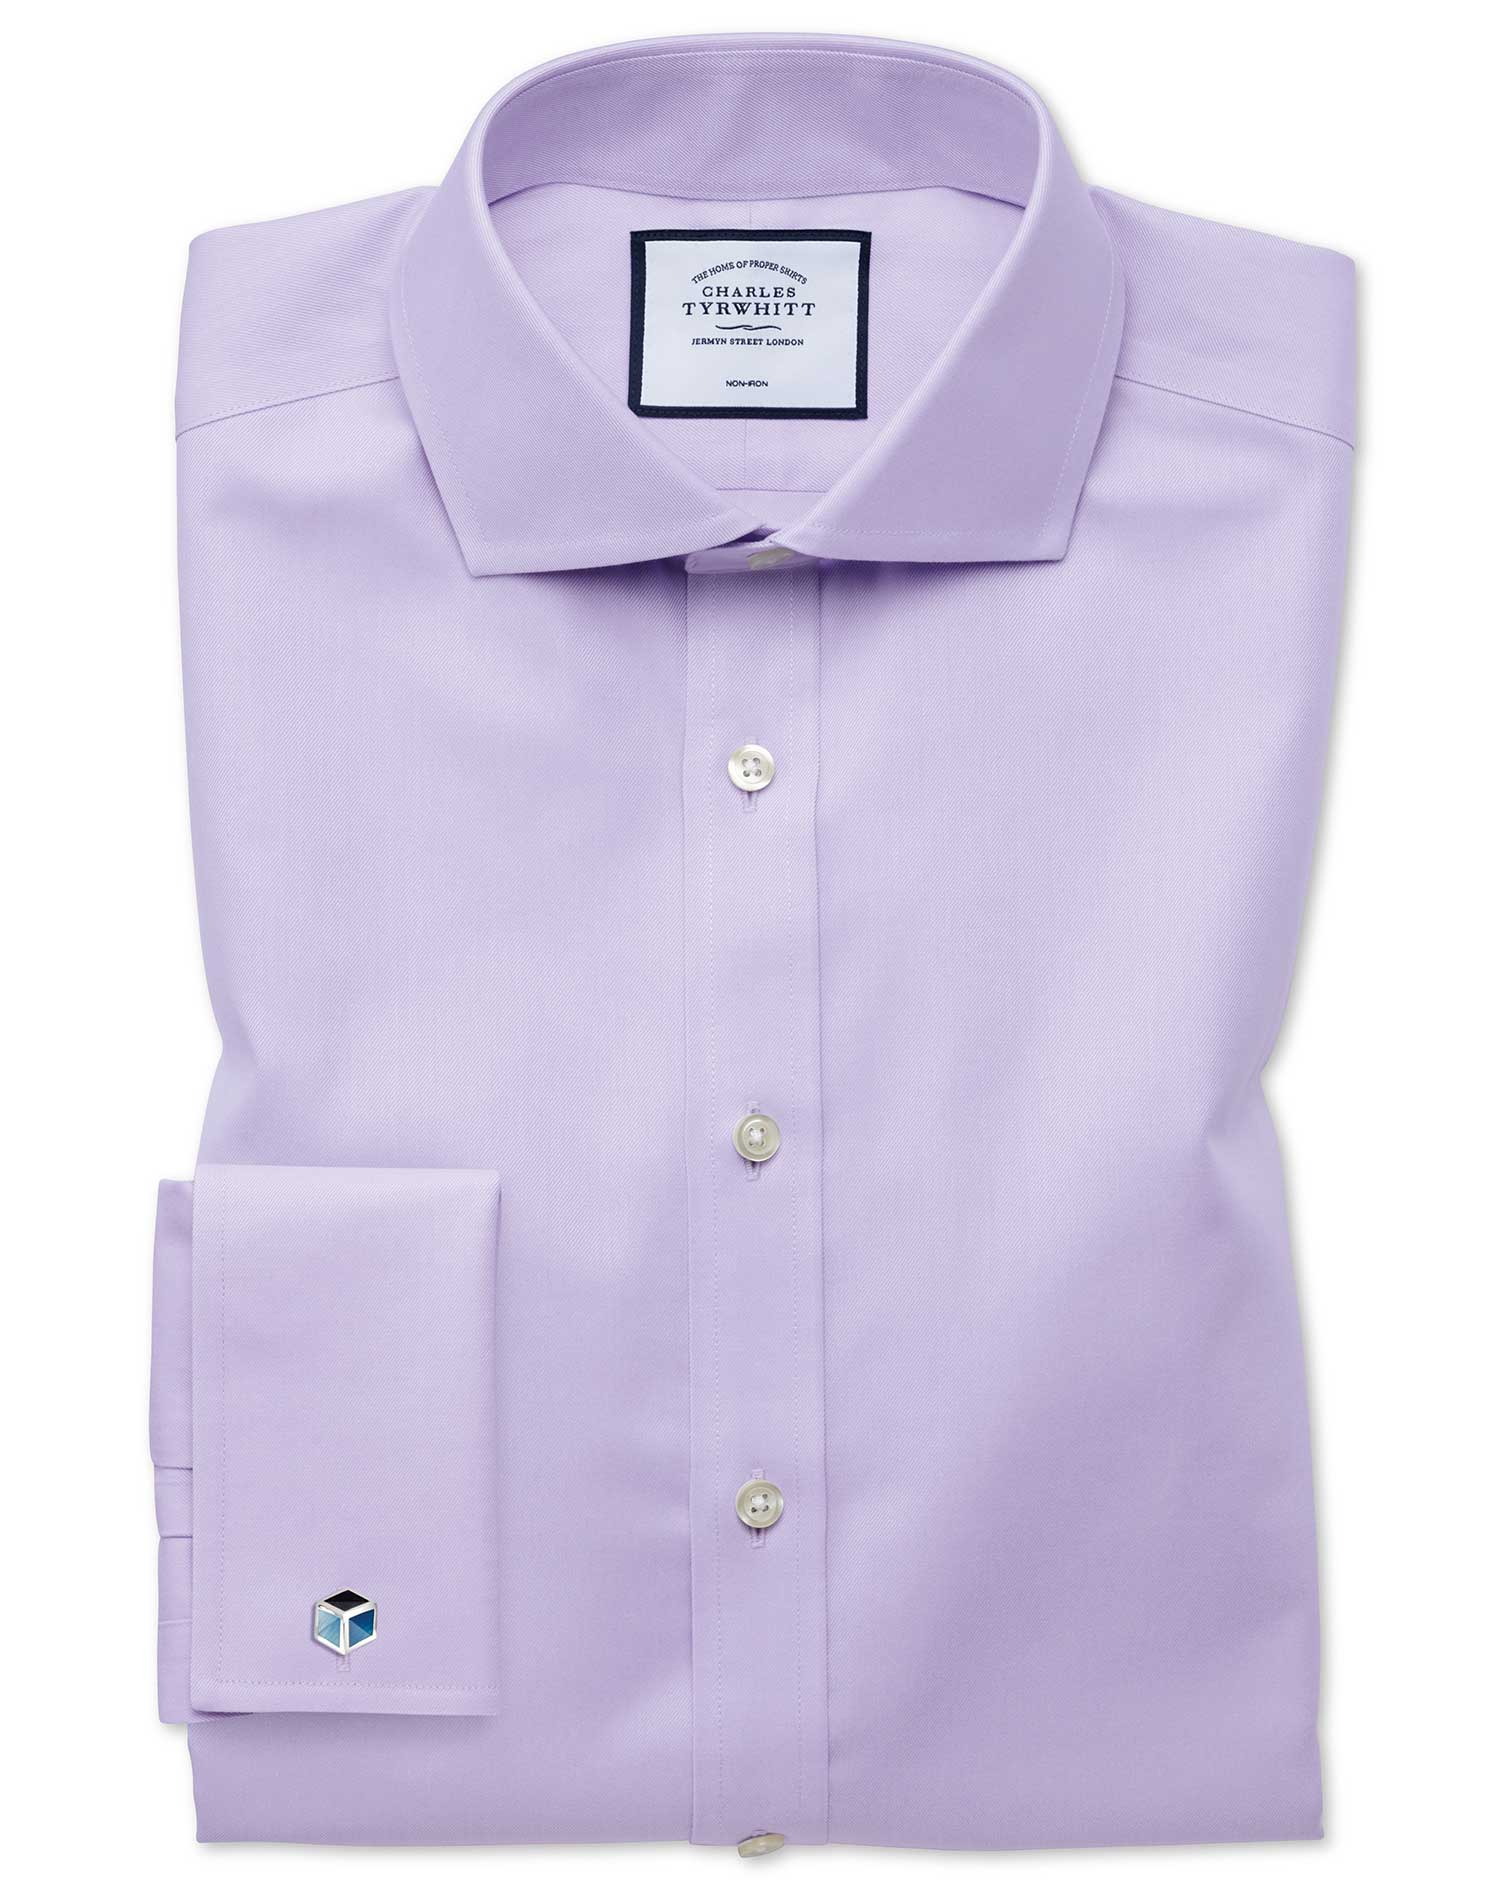 Extra Slim Fit Non-Iron Twill Lilac Cotton Formal Shirt Single Cuff Size 16/38 by Charles Tyrwhitt